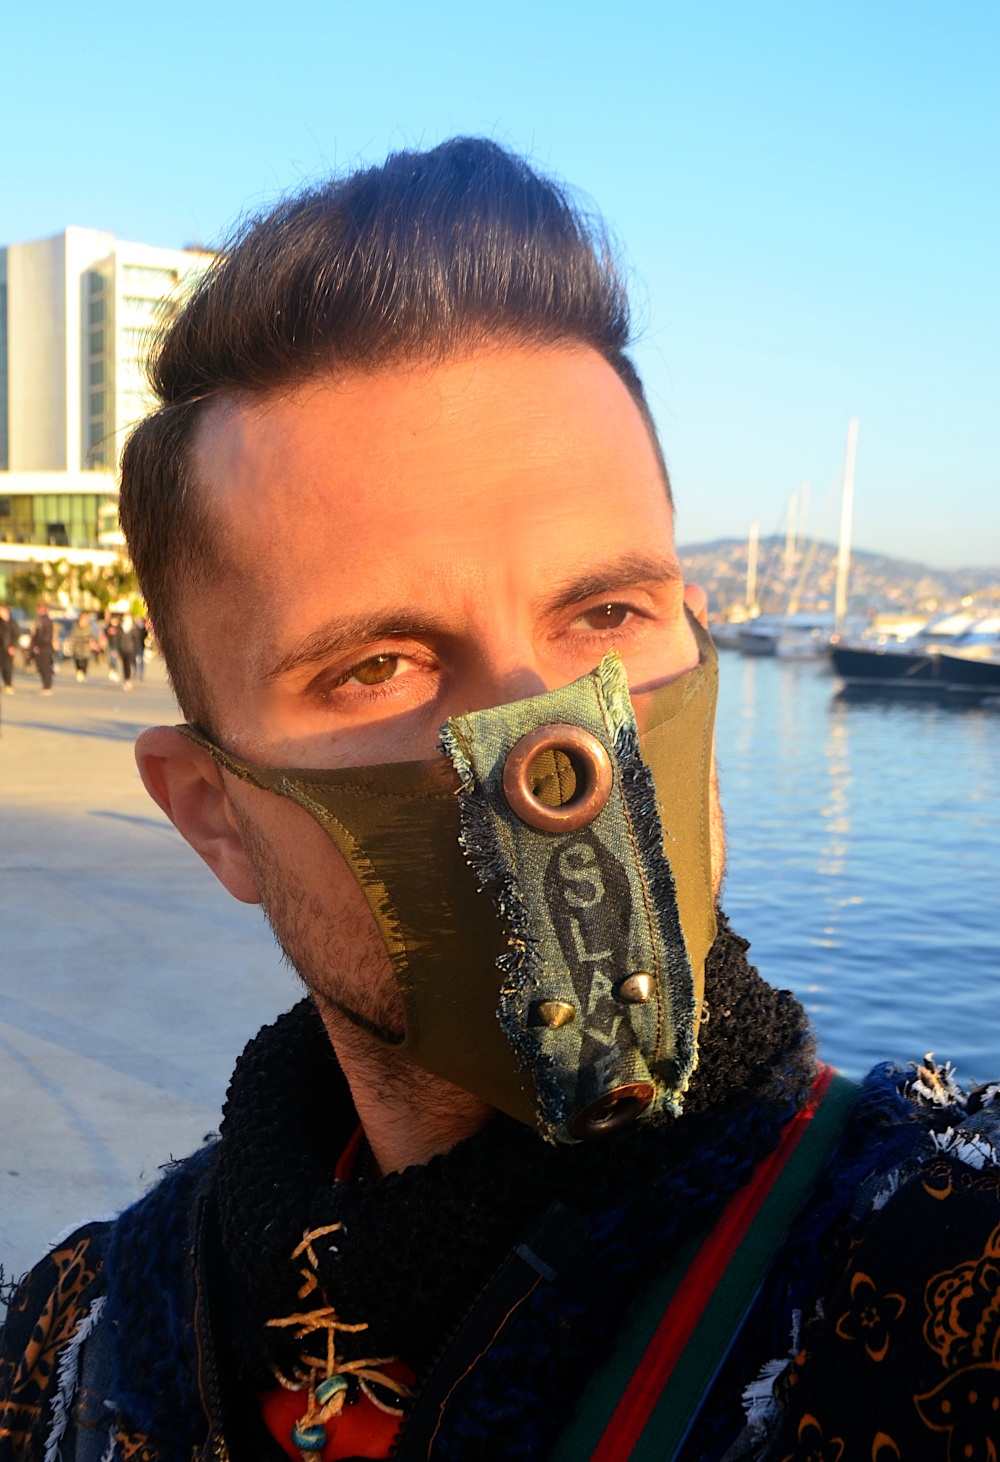 How to style a fashion mask. What is the most important thing when wearing a fashion mask?